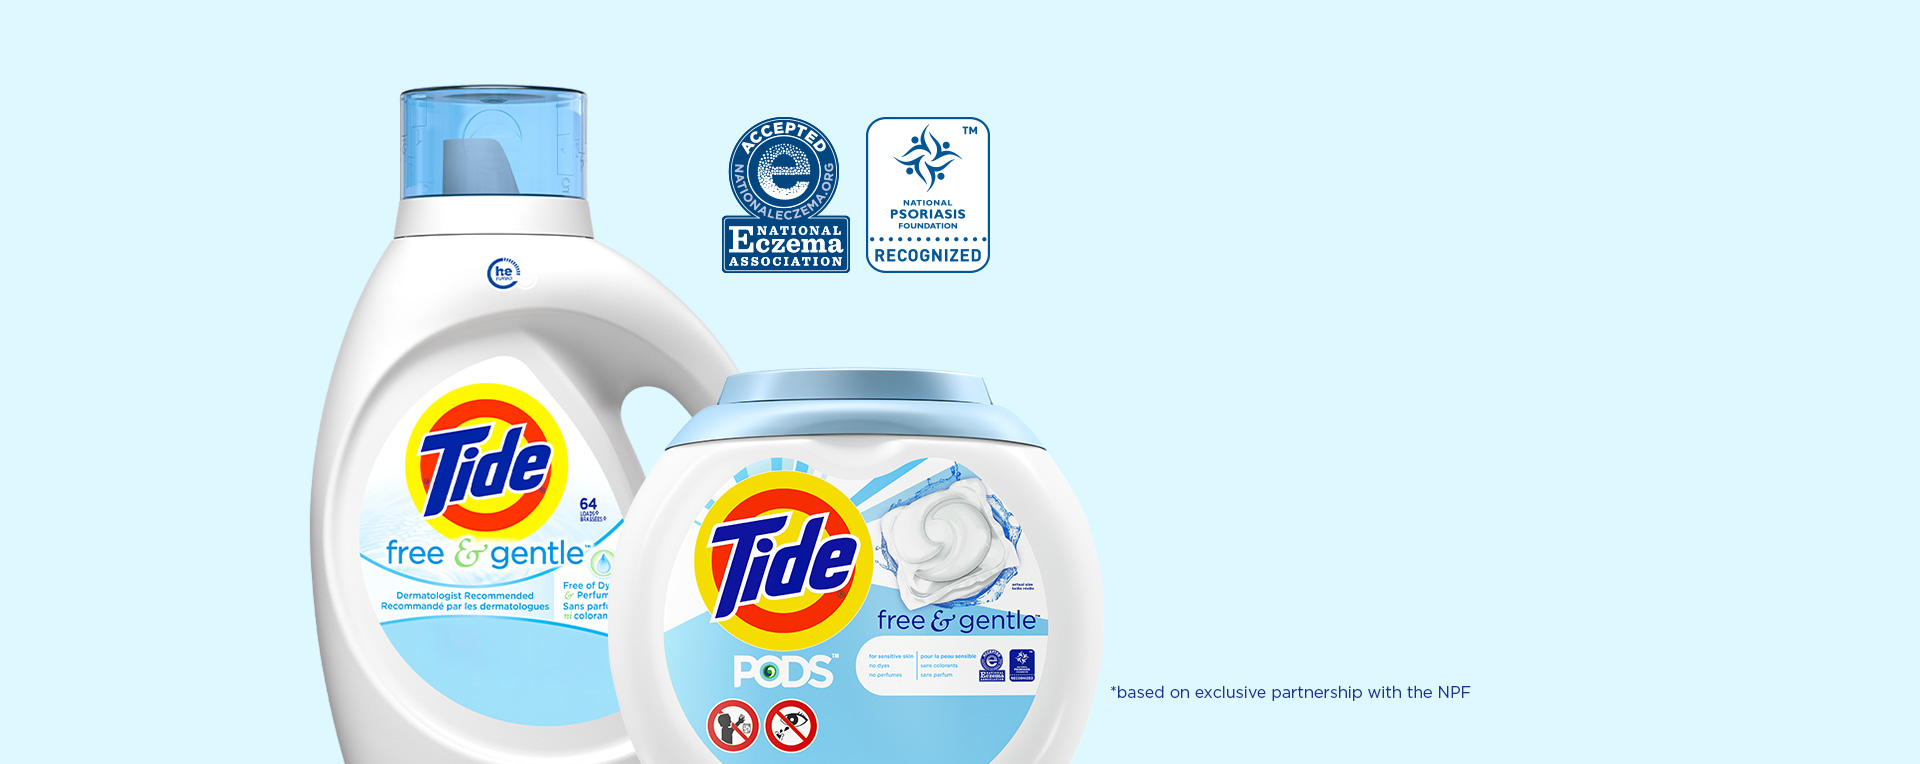 Tide Free & Gentle is recognized by both the NEA & NPF (based on exclusive partnership with the NPF)